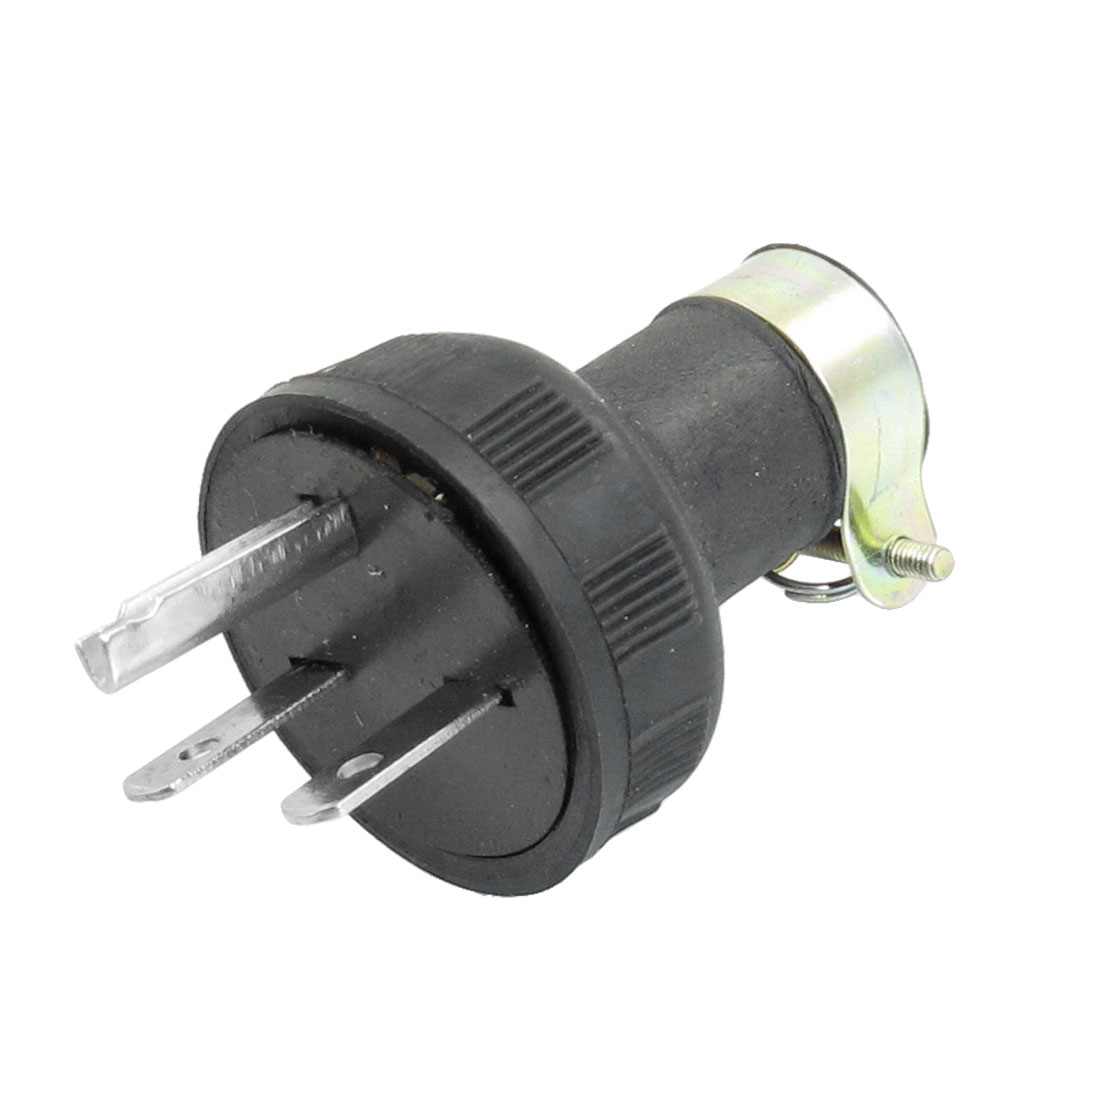 2 Pole 3 Wire Grounding Male Plug Connector AC 250V 15A